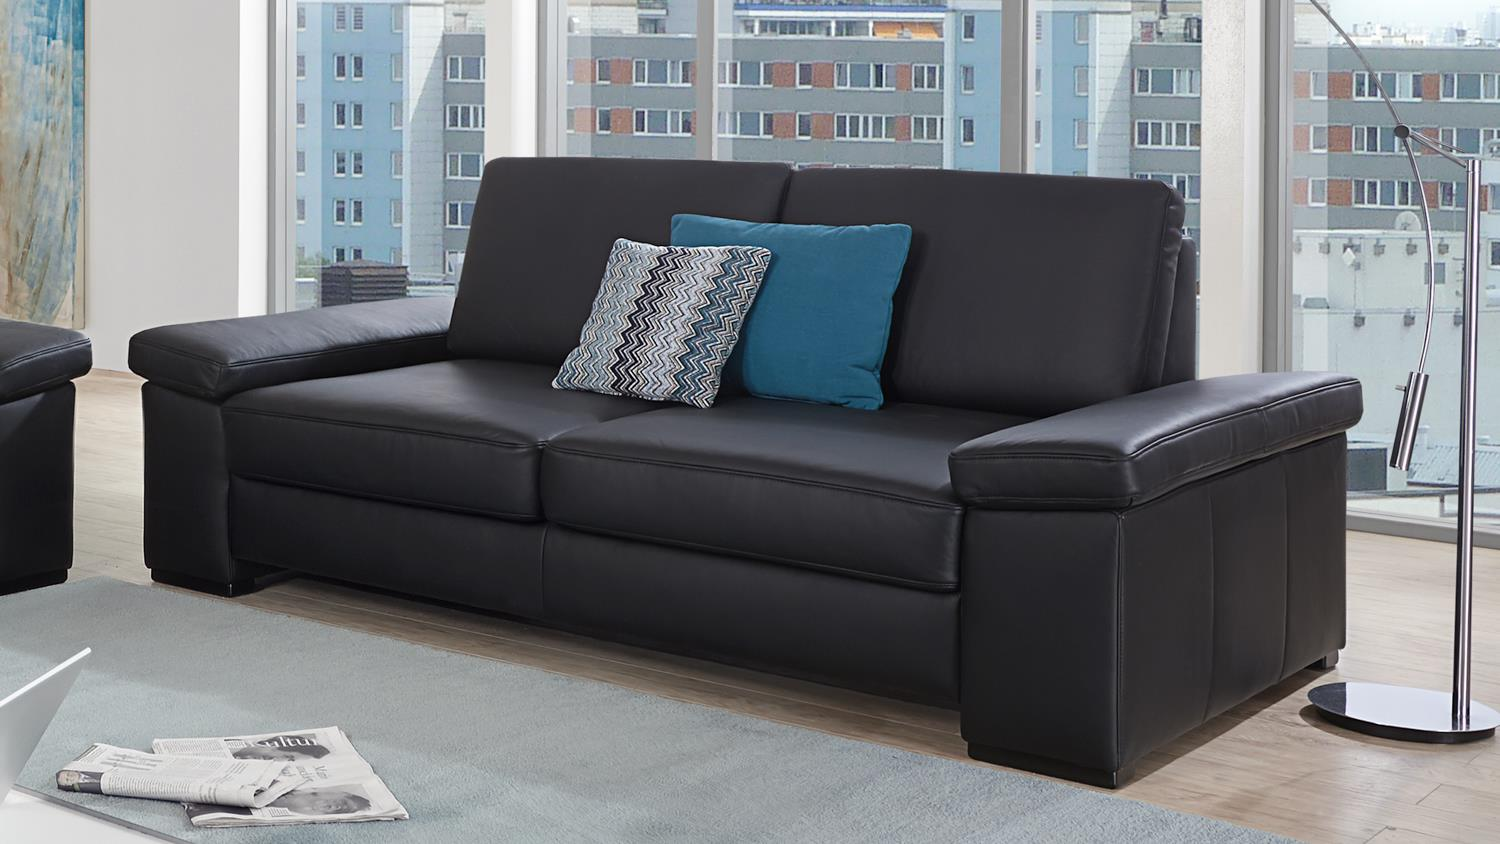 sofa puzzle 2 sitzer in lederlook schwarz mit federkern. Black Bedroom Furniture Sets. Home Design Ideas